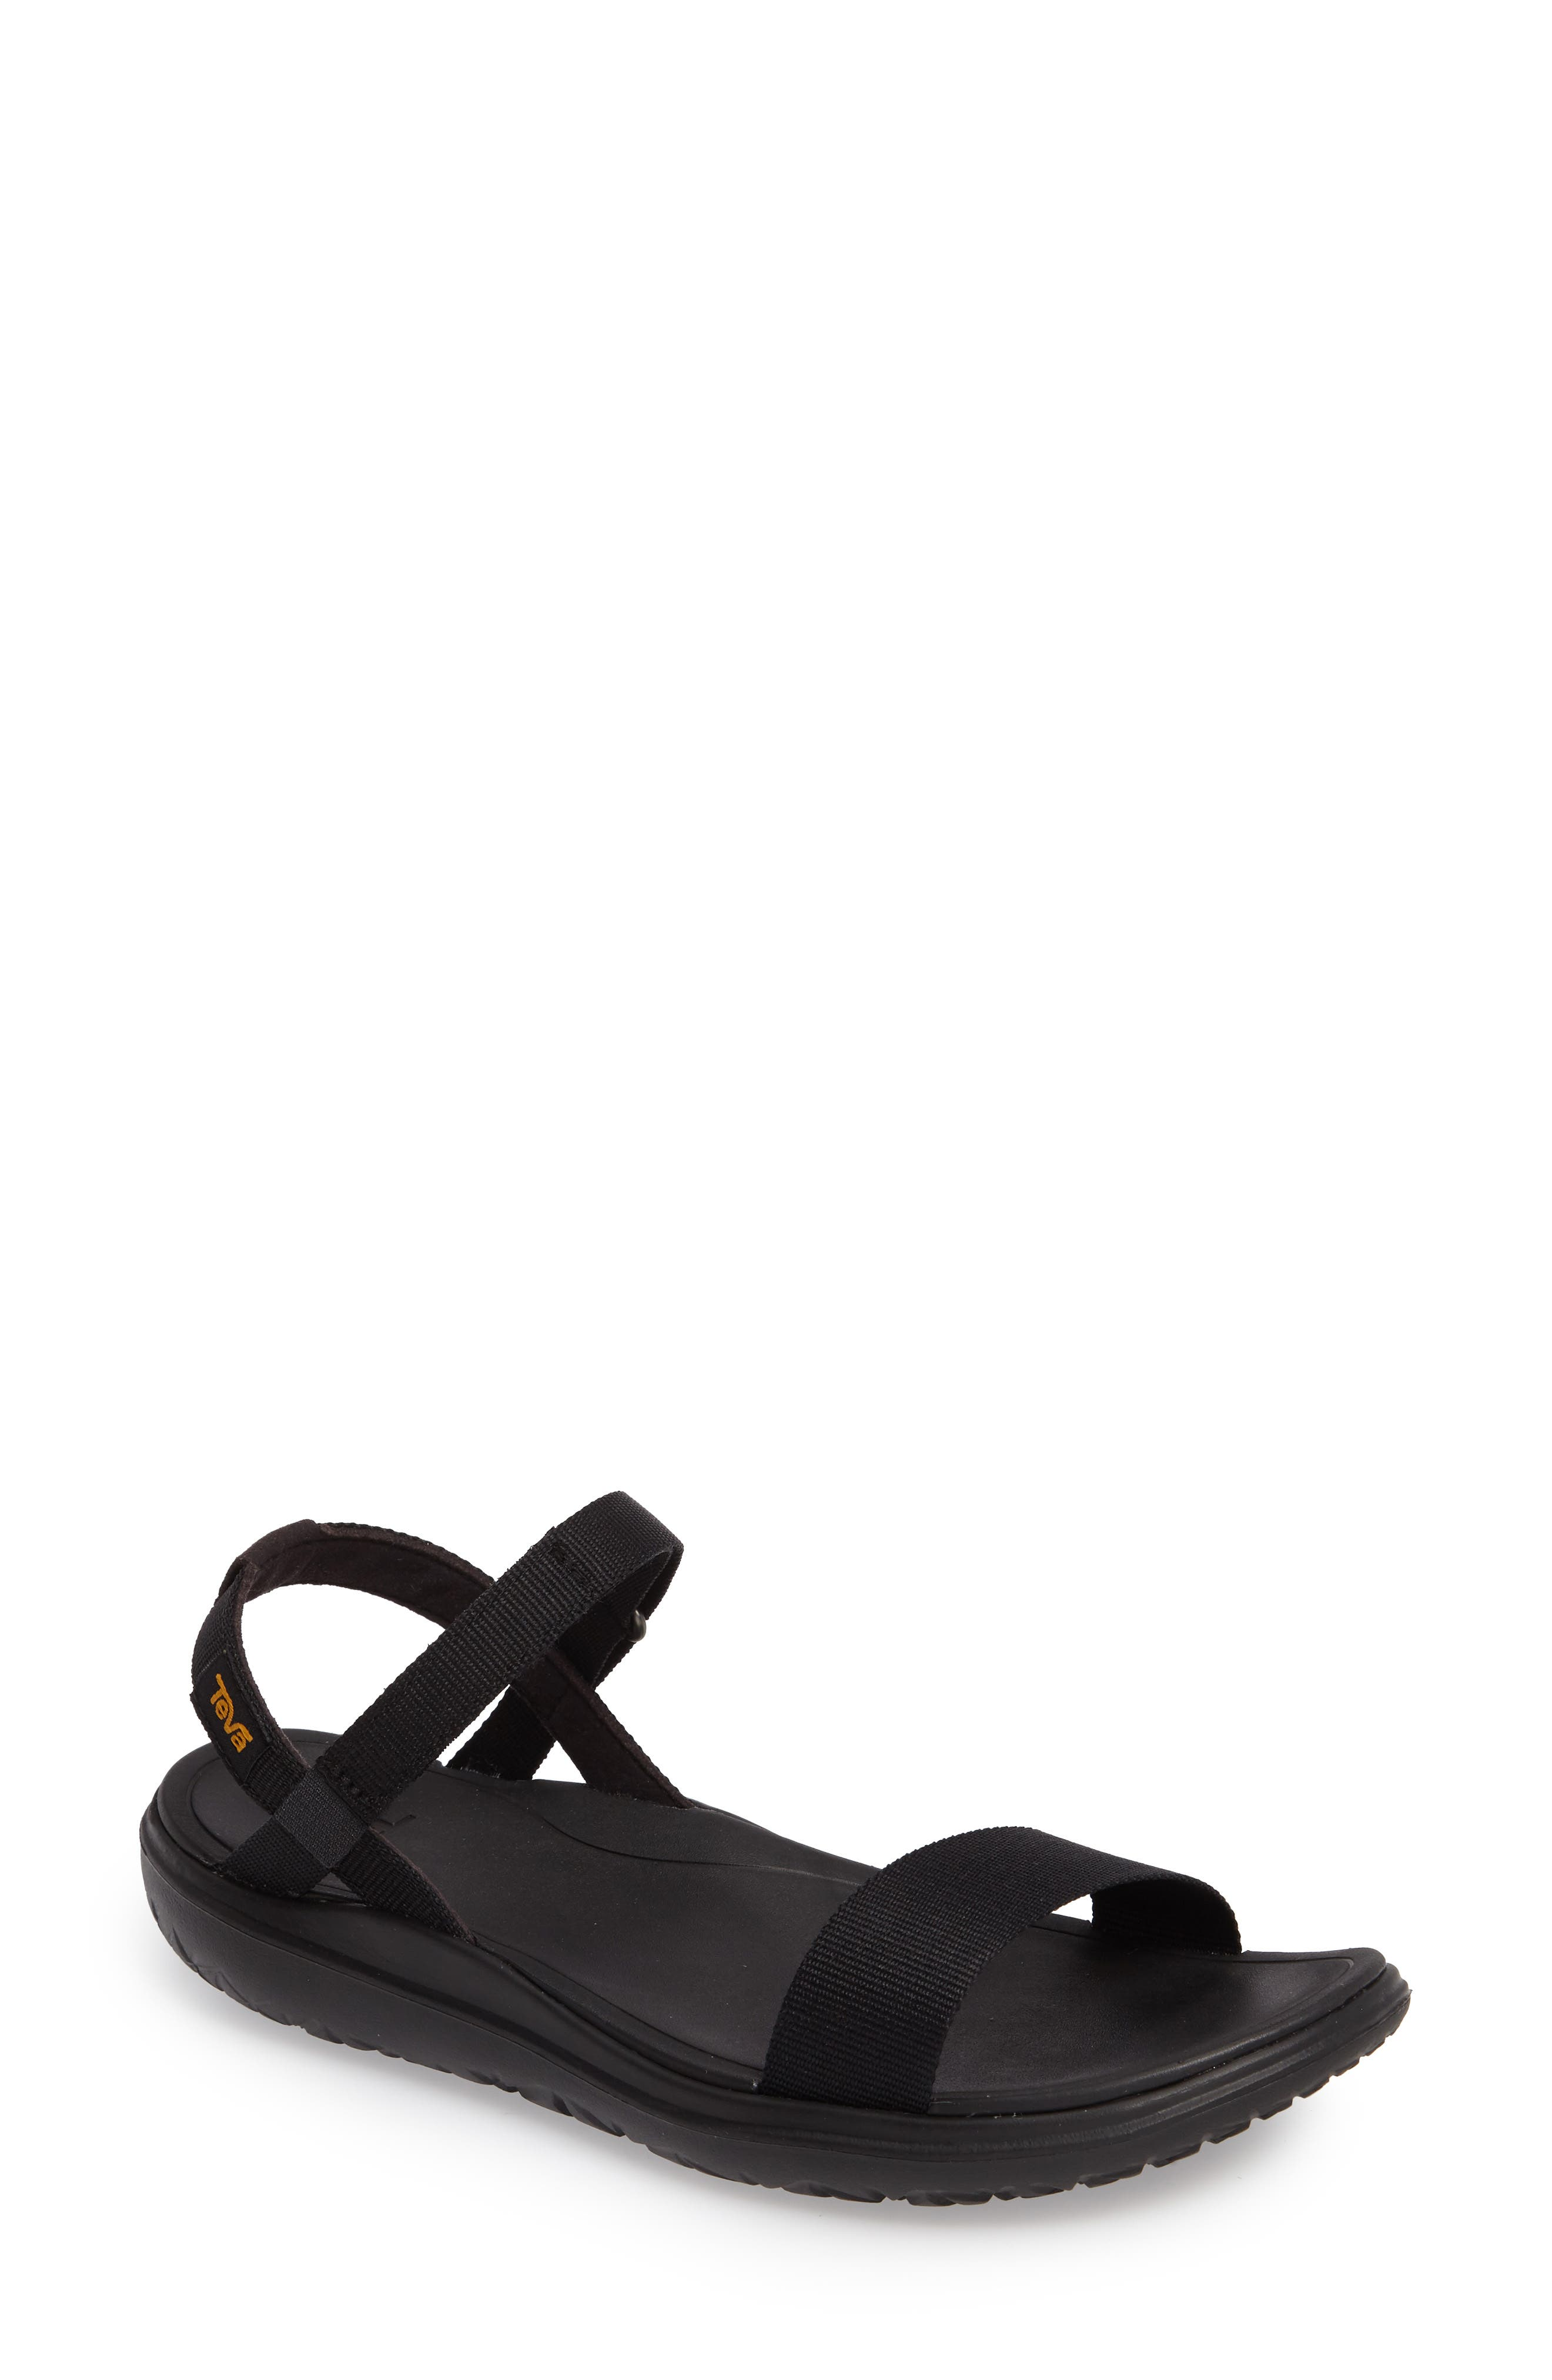 Terra Float Nova Sandal,                         Main,                         color, Black Fabric